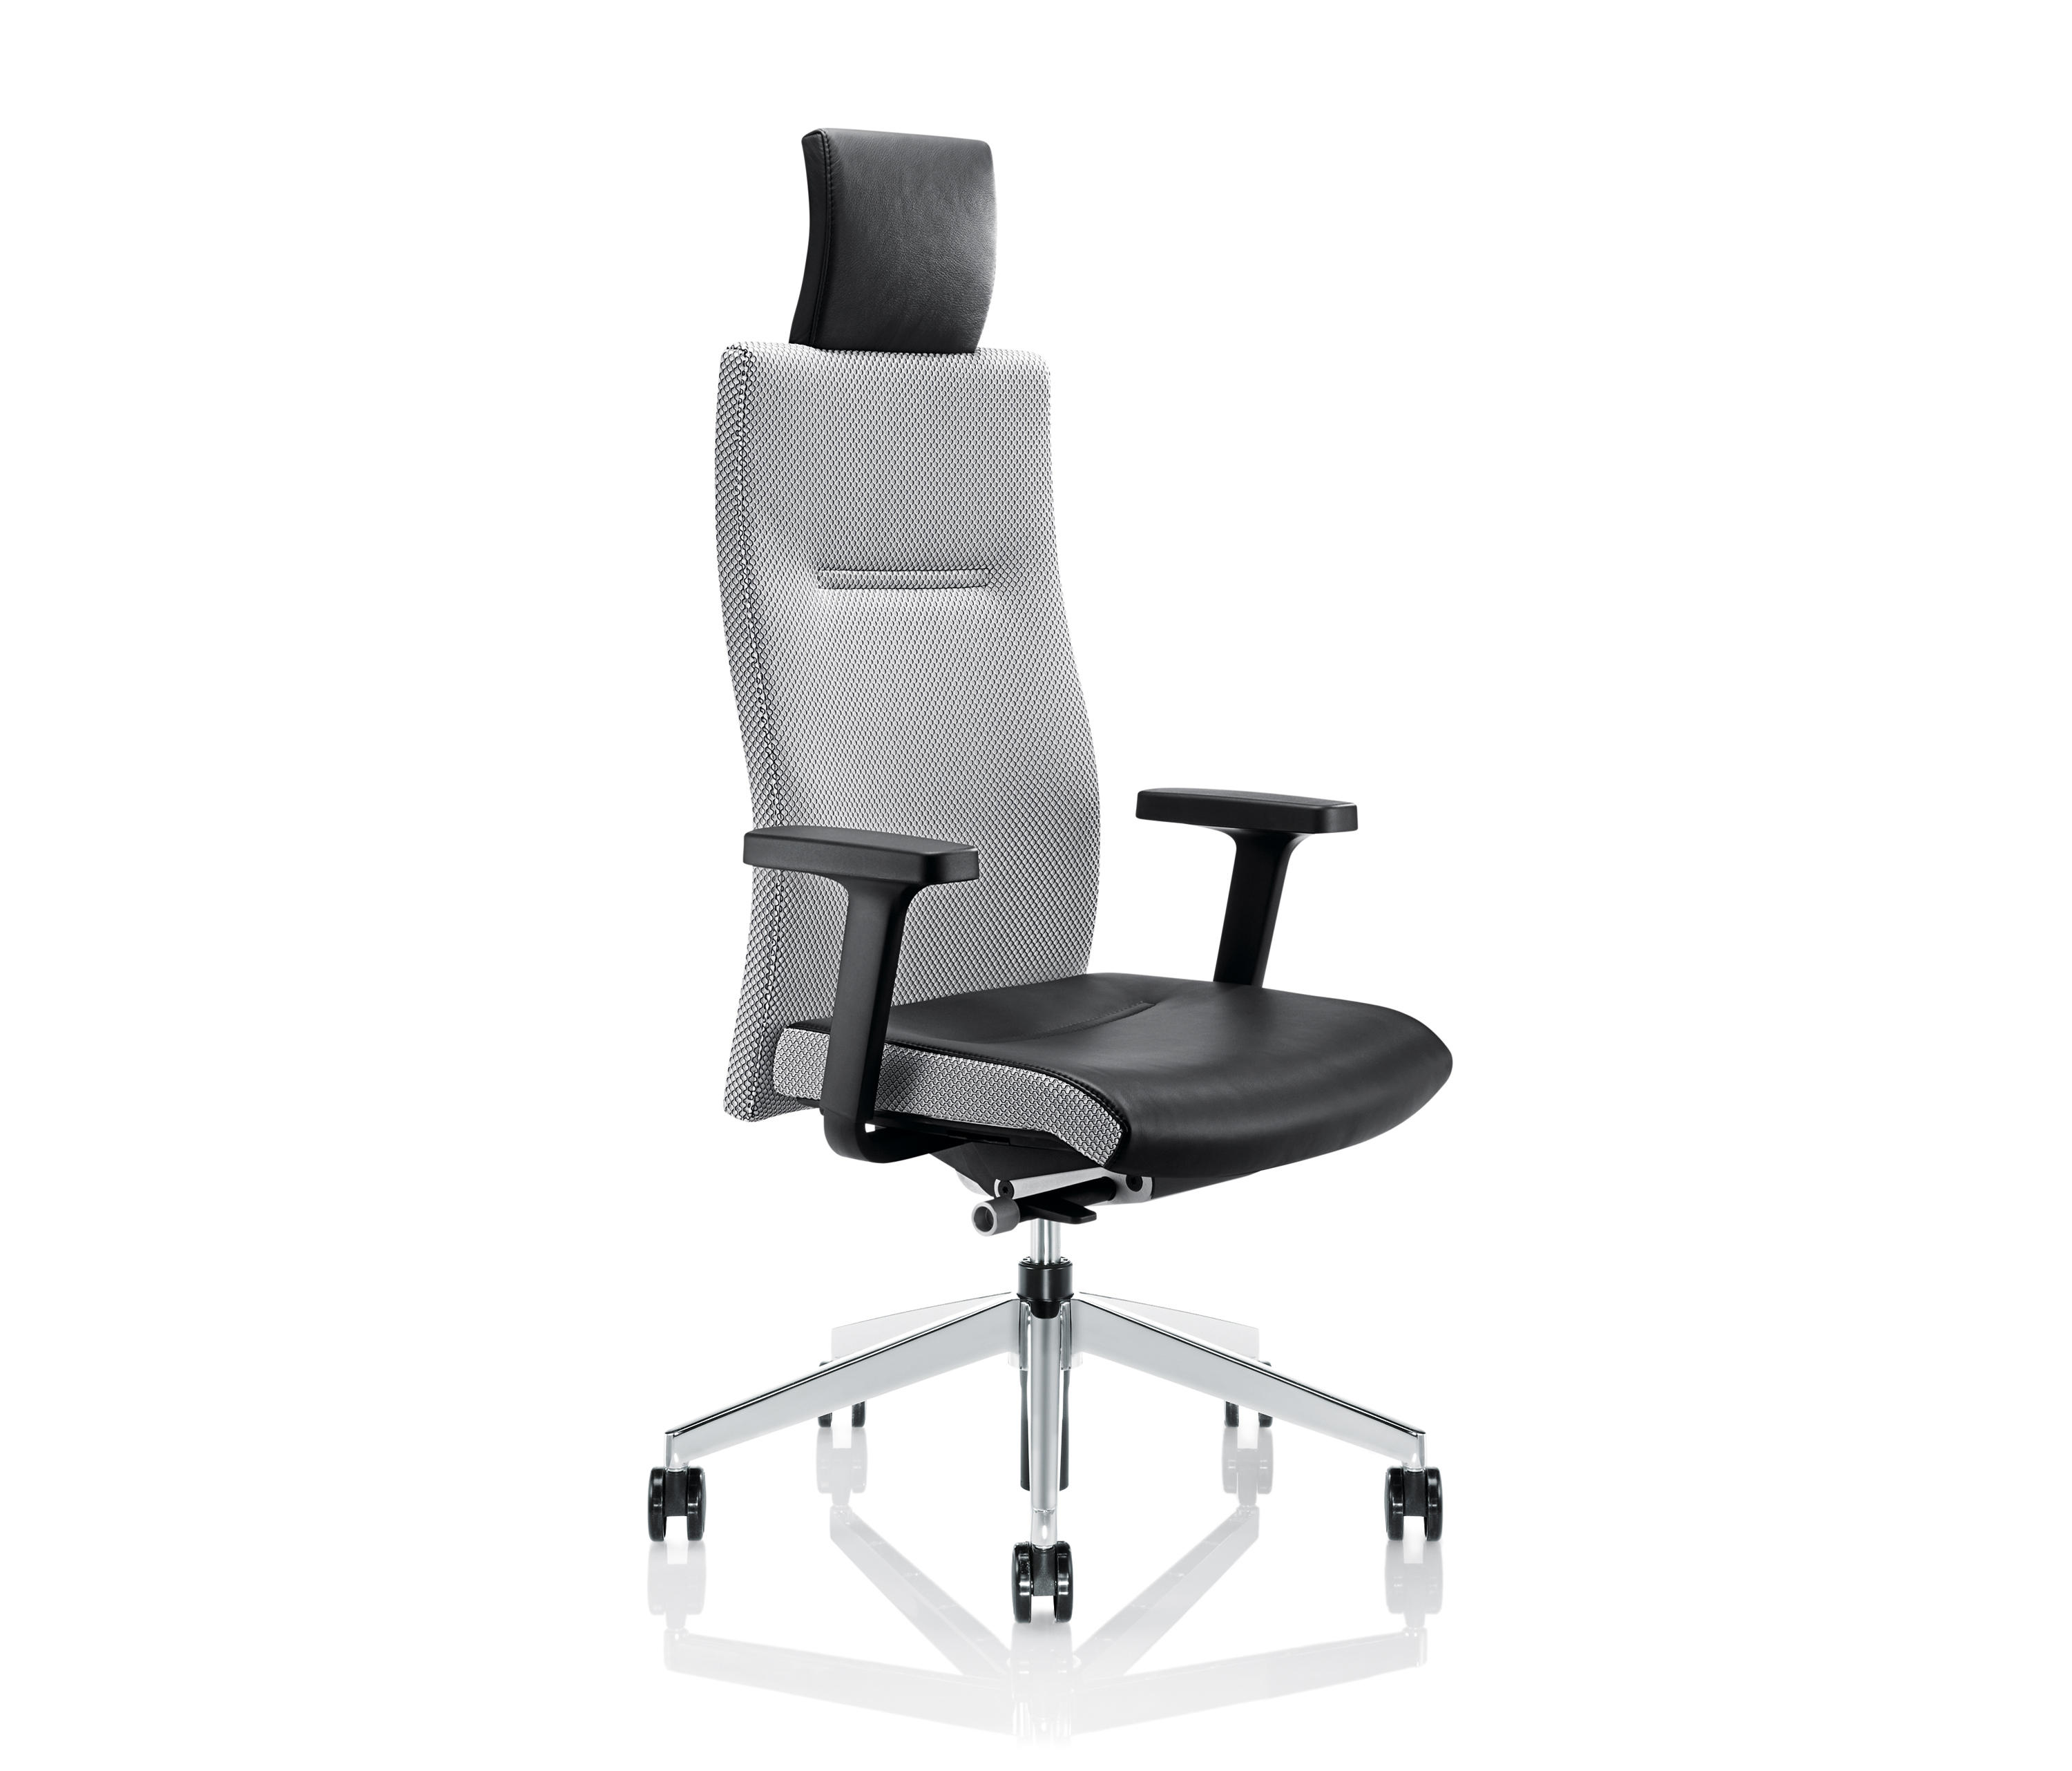 CUBO FLEX SWIVEL CHAIR Executive chairs from Züco